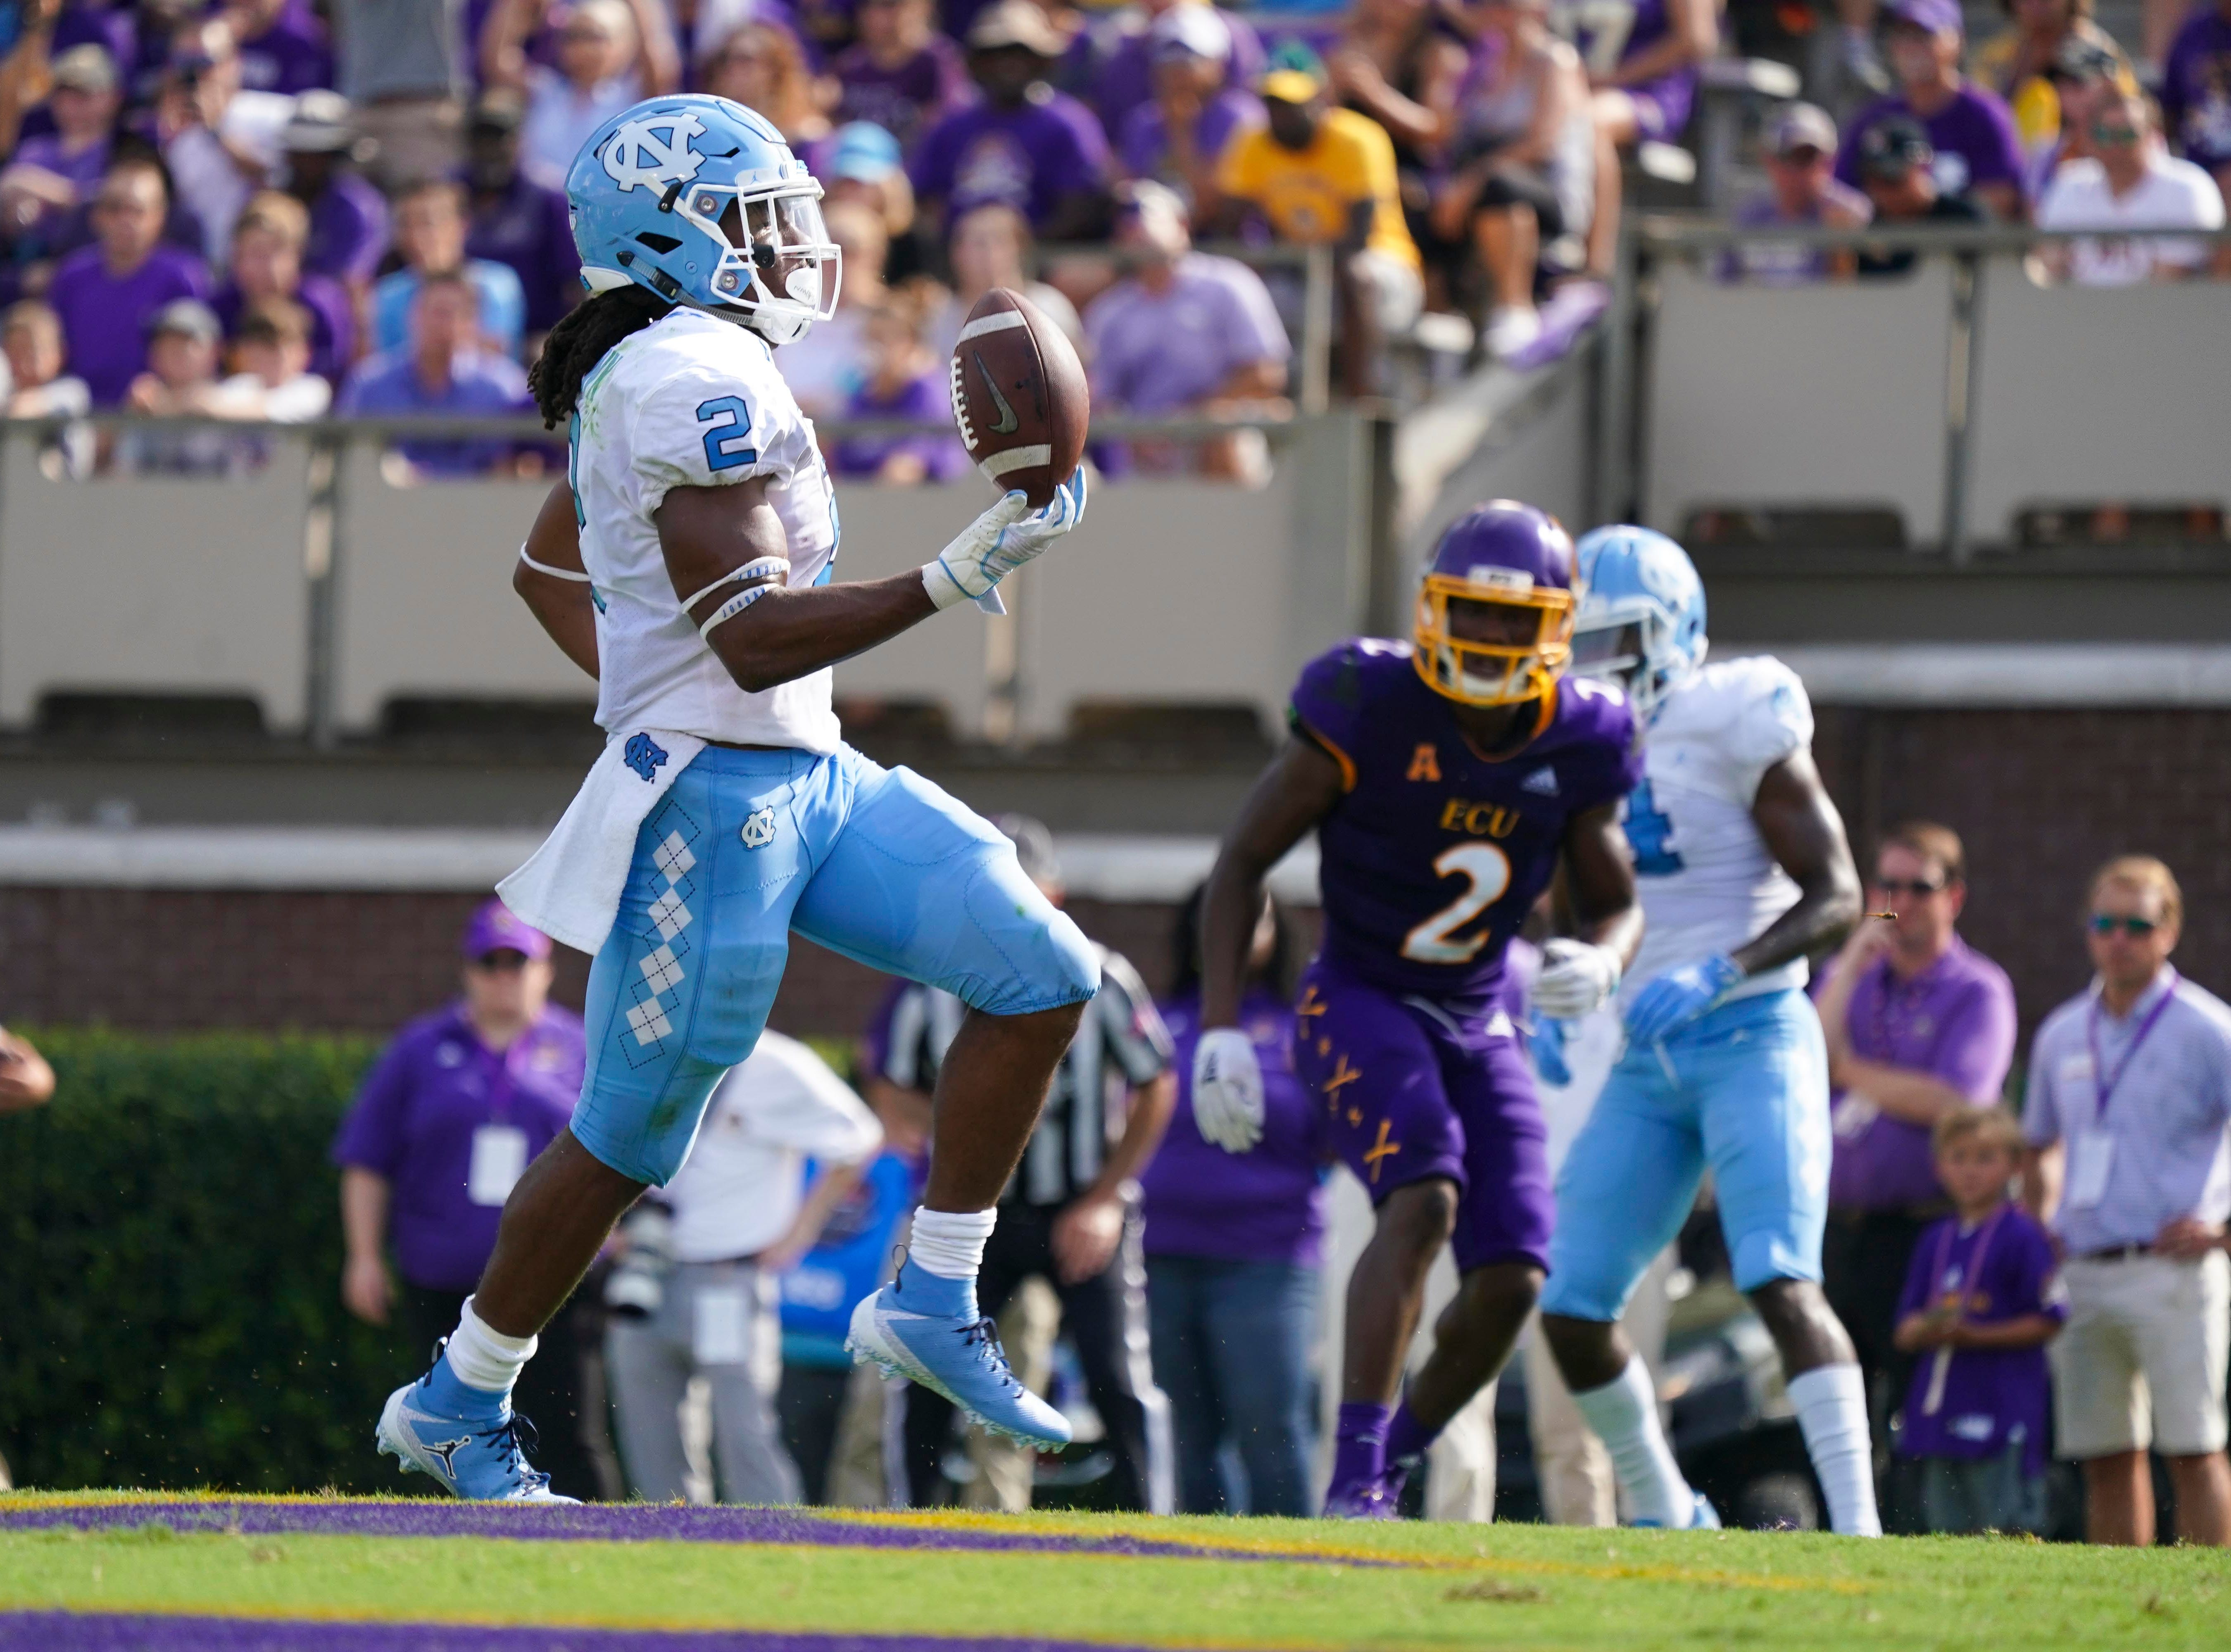 North Carolina Tar Heels running back Jordon Brown (2) celebrates after scoring a first-half touchdown against the East Carolina Pirates at Dowdy-Ficklen Stadium.